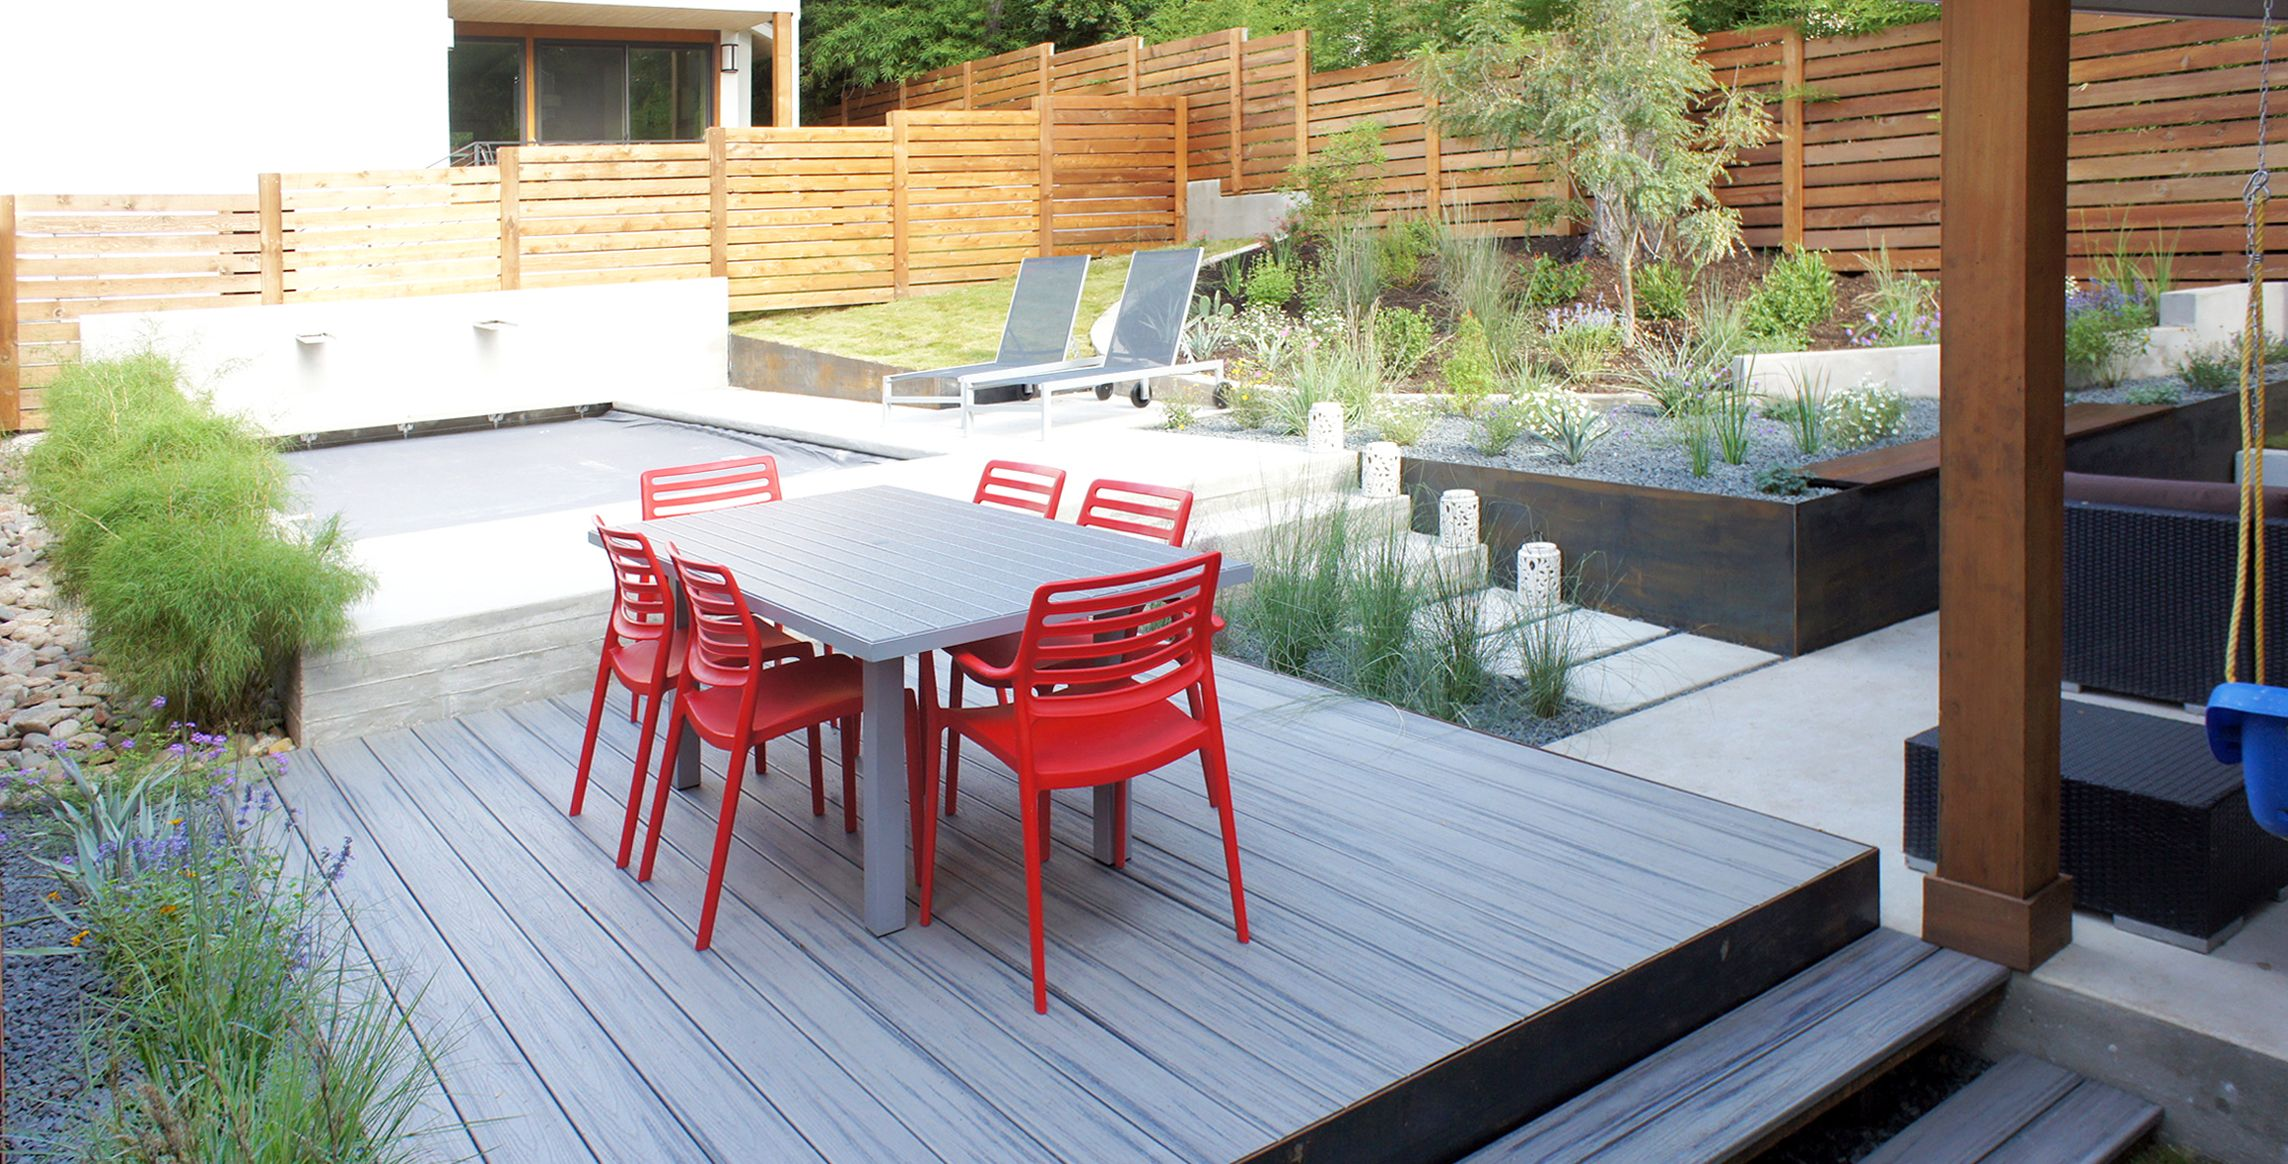 oes thomas residence trex deck in grey concrete pavers steel